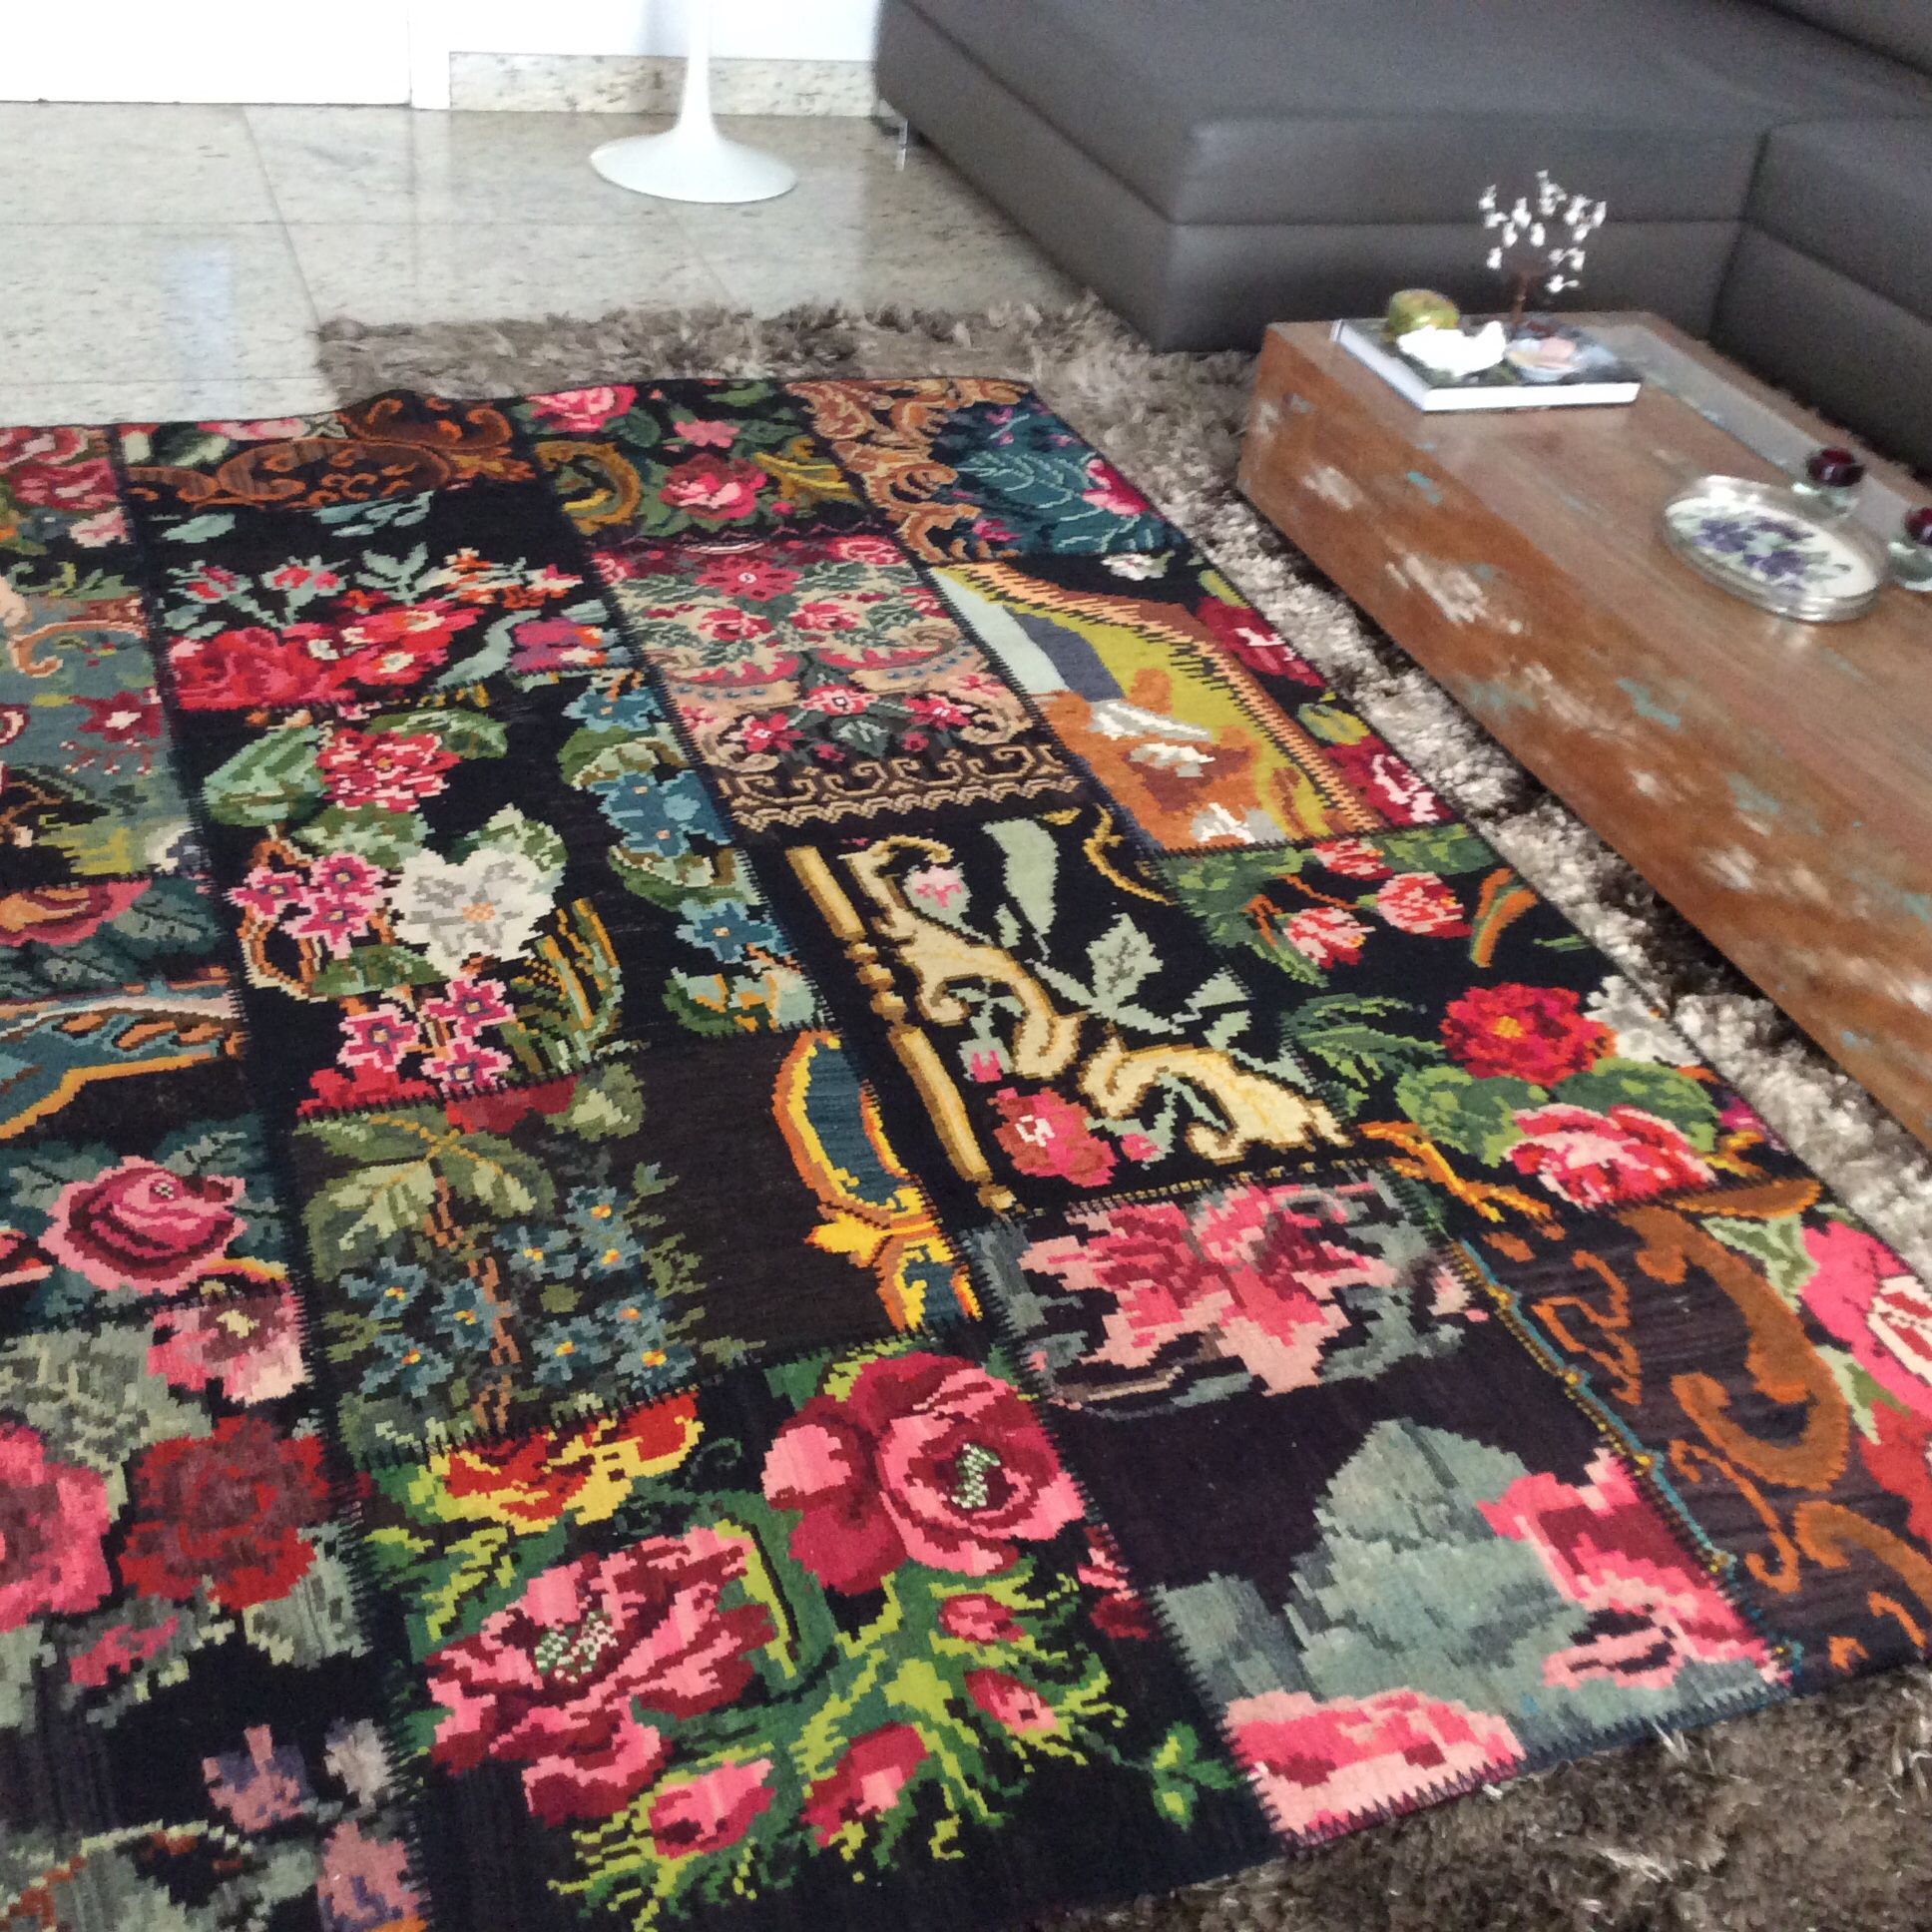 Silkeborg Teppich Ikea Silkeborg Rug From Ikea Textiles Fabrics Classic Unique